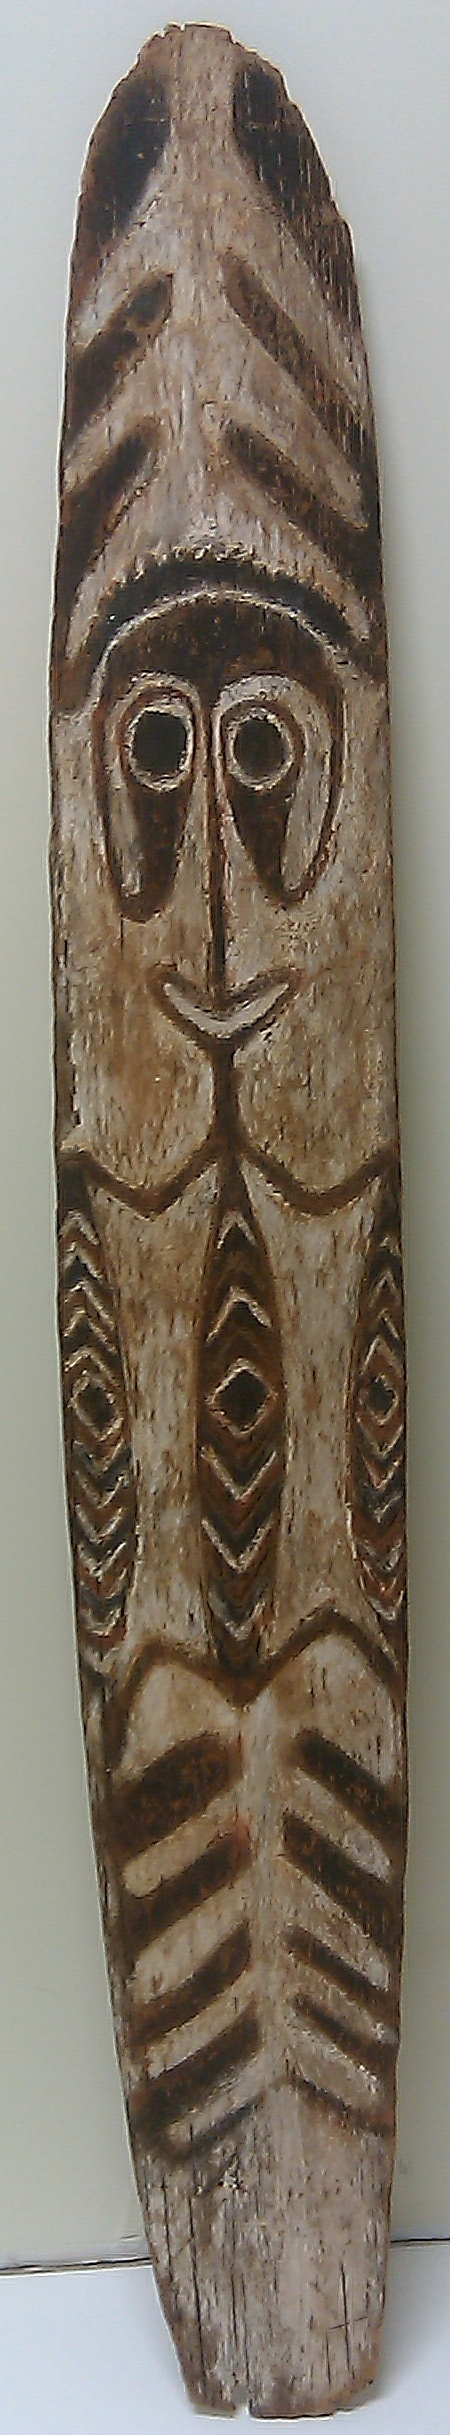 Papua New Guinea Spirit Boards, Researched and Conserved by Moira Anderson